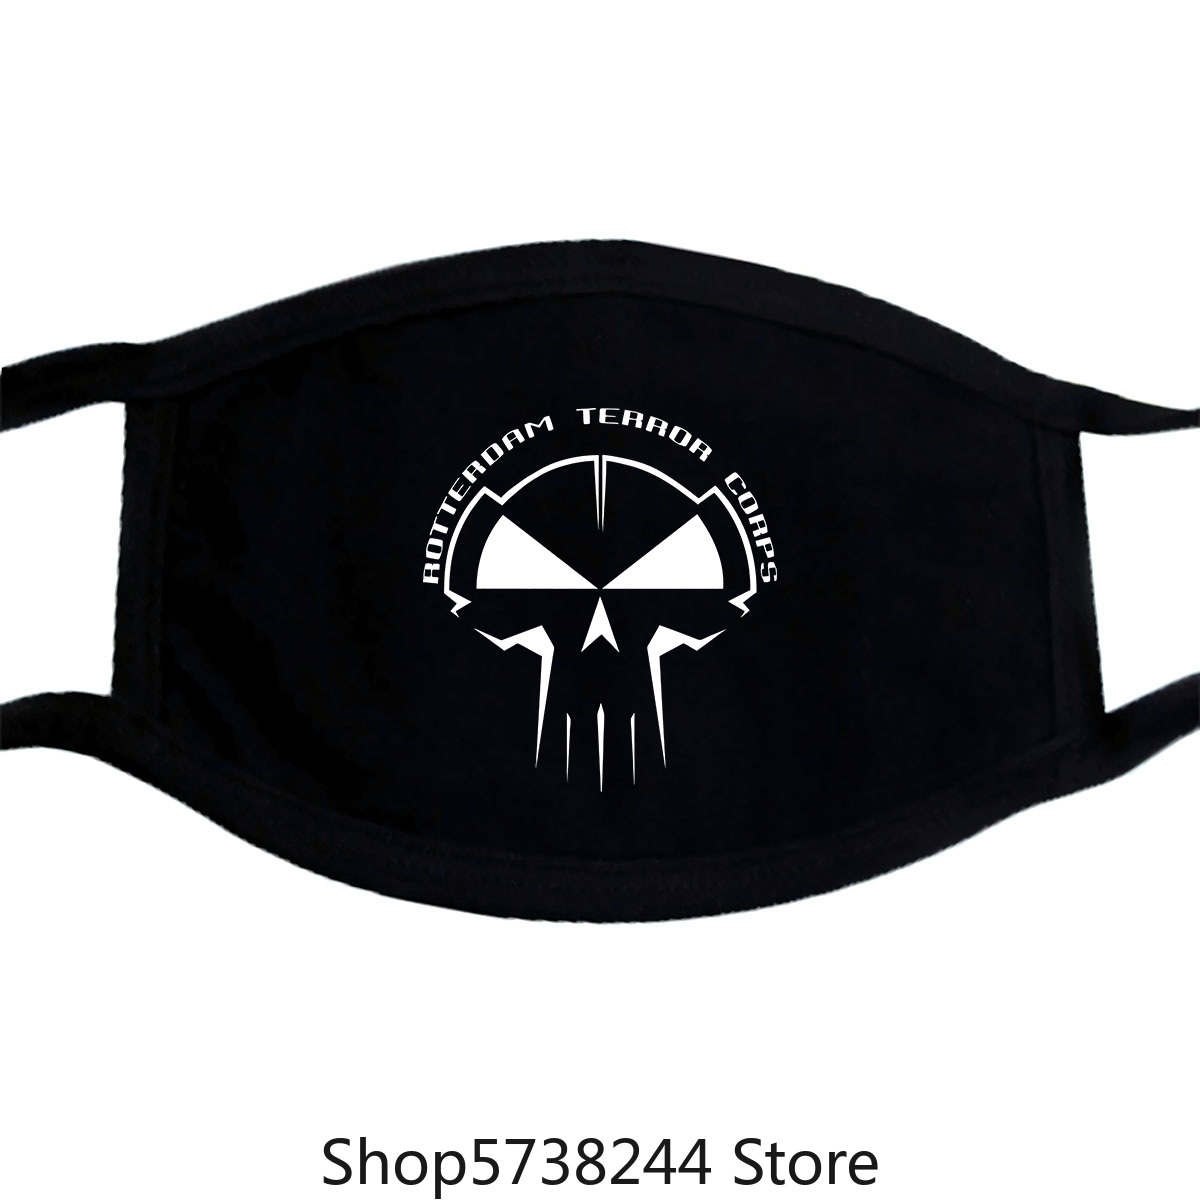 Mens Mask Rotterdam Terror Corps Size Up To 5Xl Washable Reusable Mask